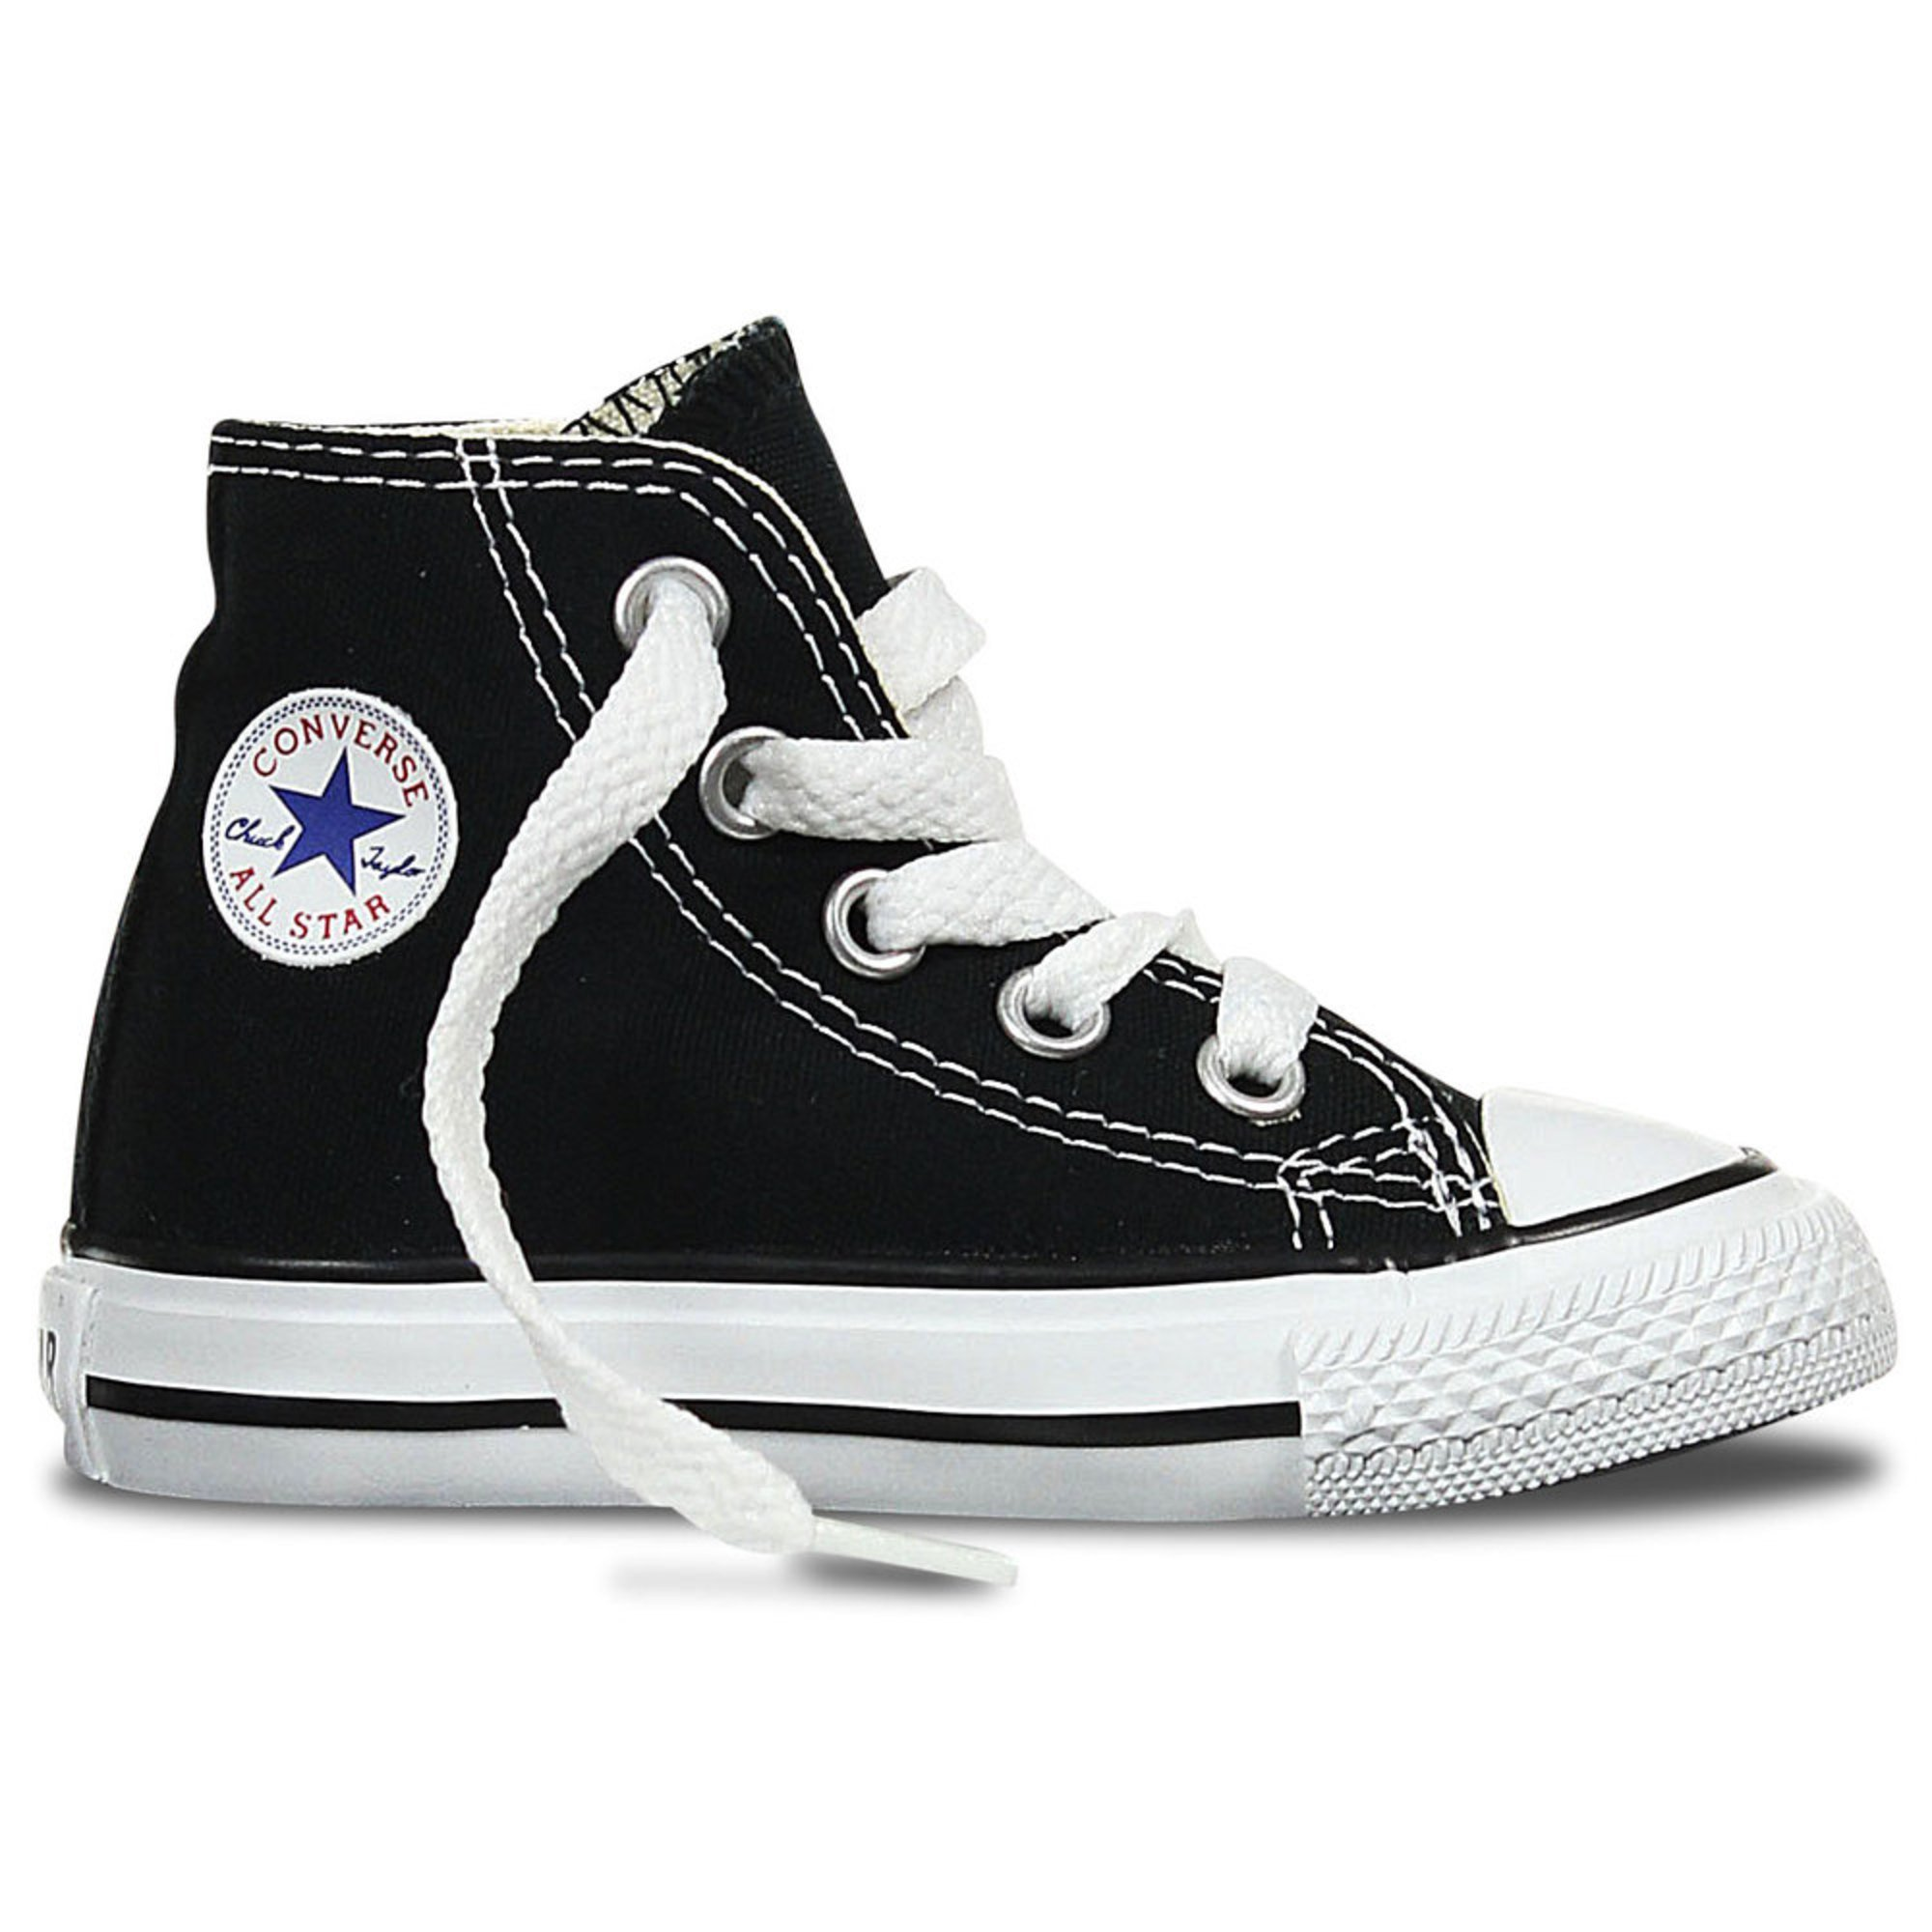 c150c10670a Converse. Converse Boys Chuck Taylor All Star Hi Top Basketball Shoe ...